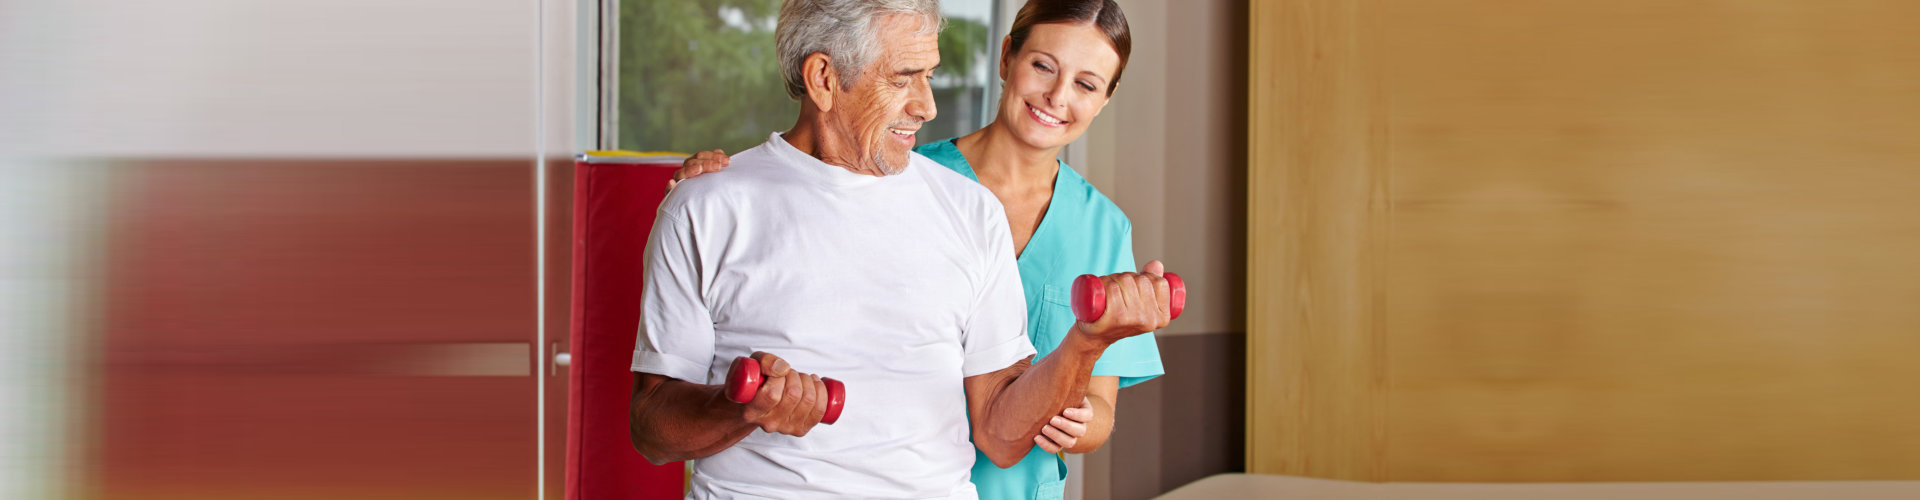 senior man with dumbbells assisting by the occupational therapist